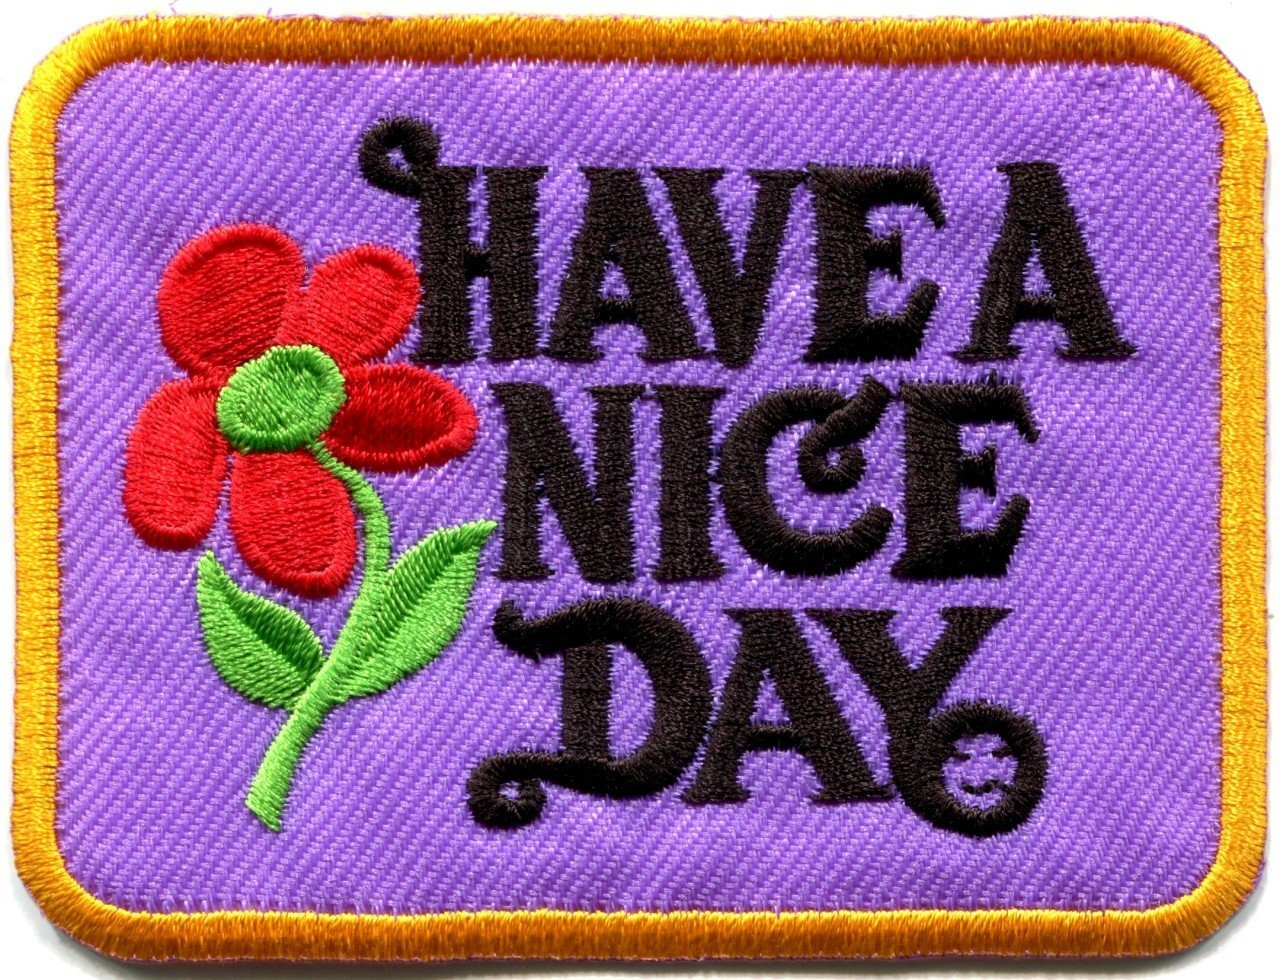 Have a Nice Day Hippie Applique Iron-on Patch S-119 Handmade Design From Thailand by BESTBEST   B00BK45IGQ